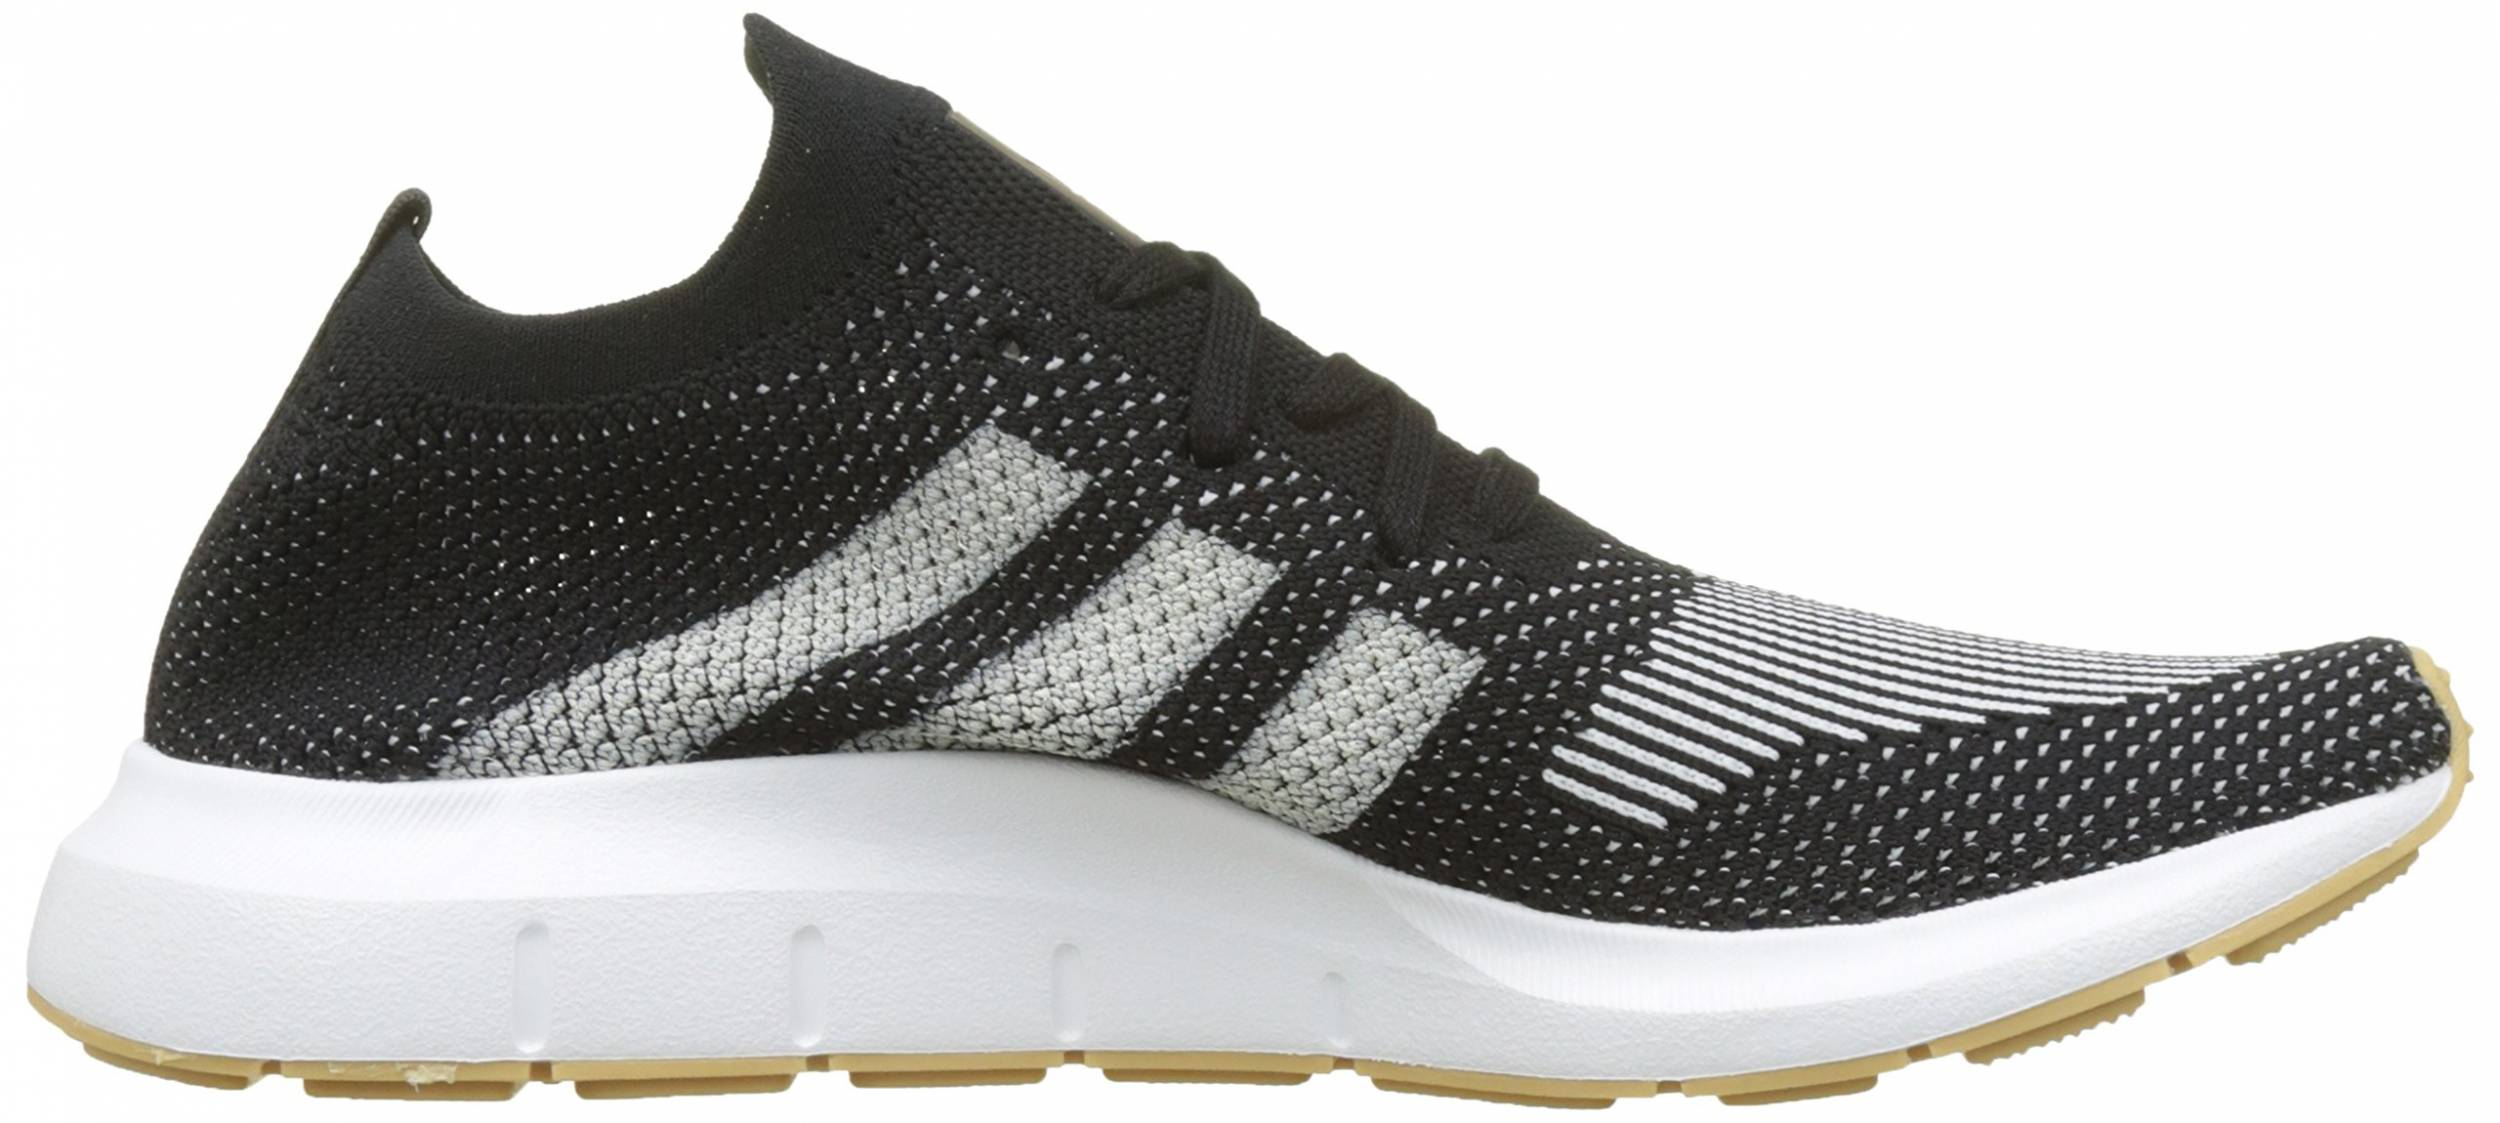 famélico sarcoma camino  Adidas Swift Run Primeknit sneakers in 9 colors (only $67) | RunRepeat